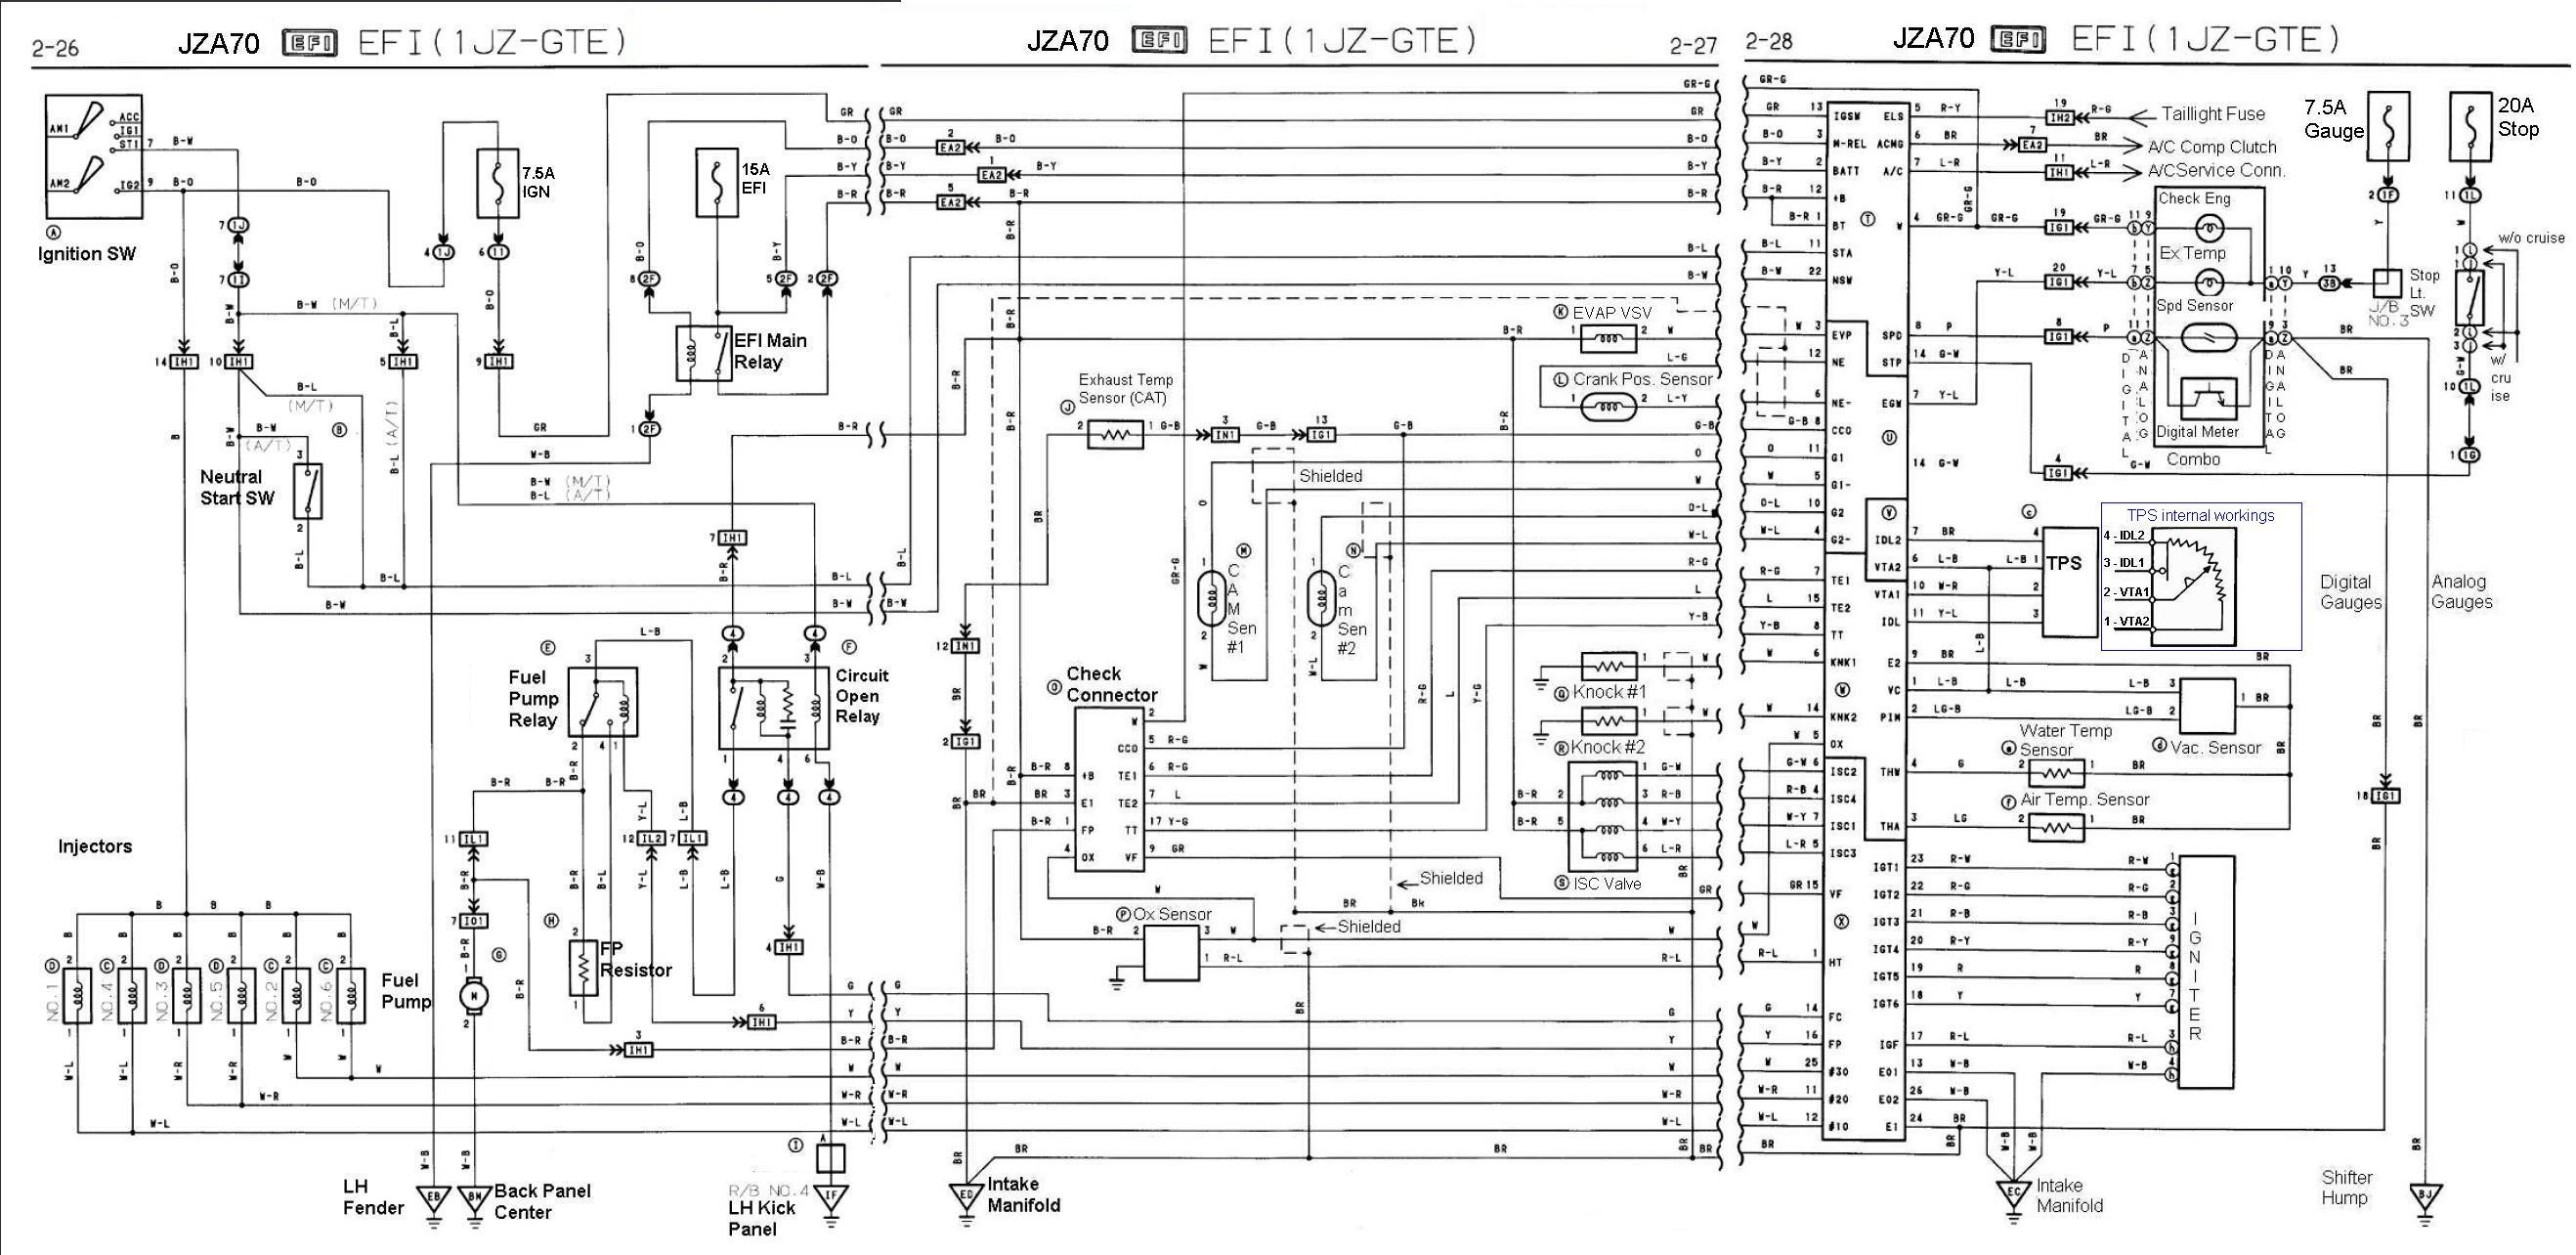 Engine Wiring Diagram 1993 Bmw 525i Engine Wiring Diagram Bmw Wiring Diagrams Instructions Of Engine Wiring Diagram